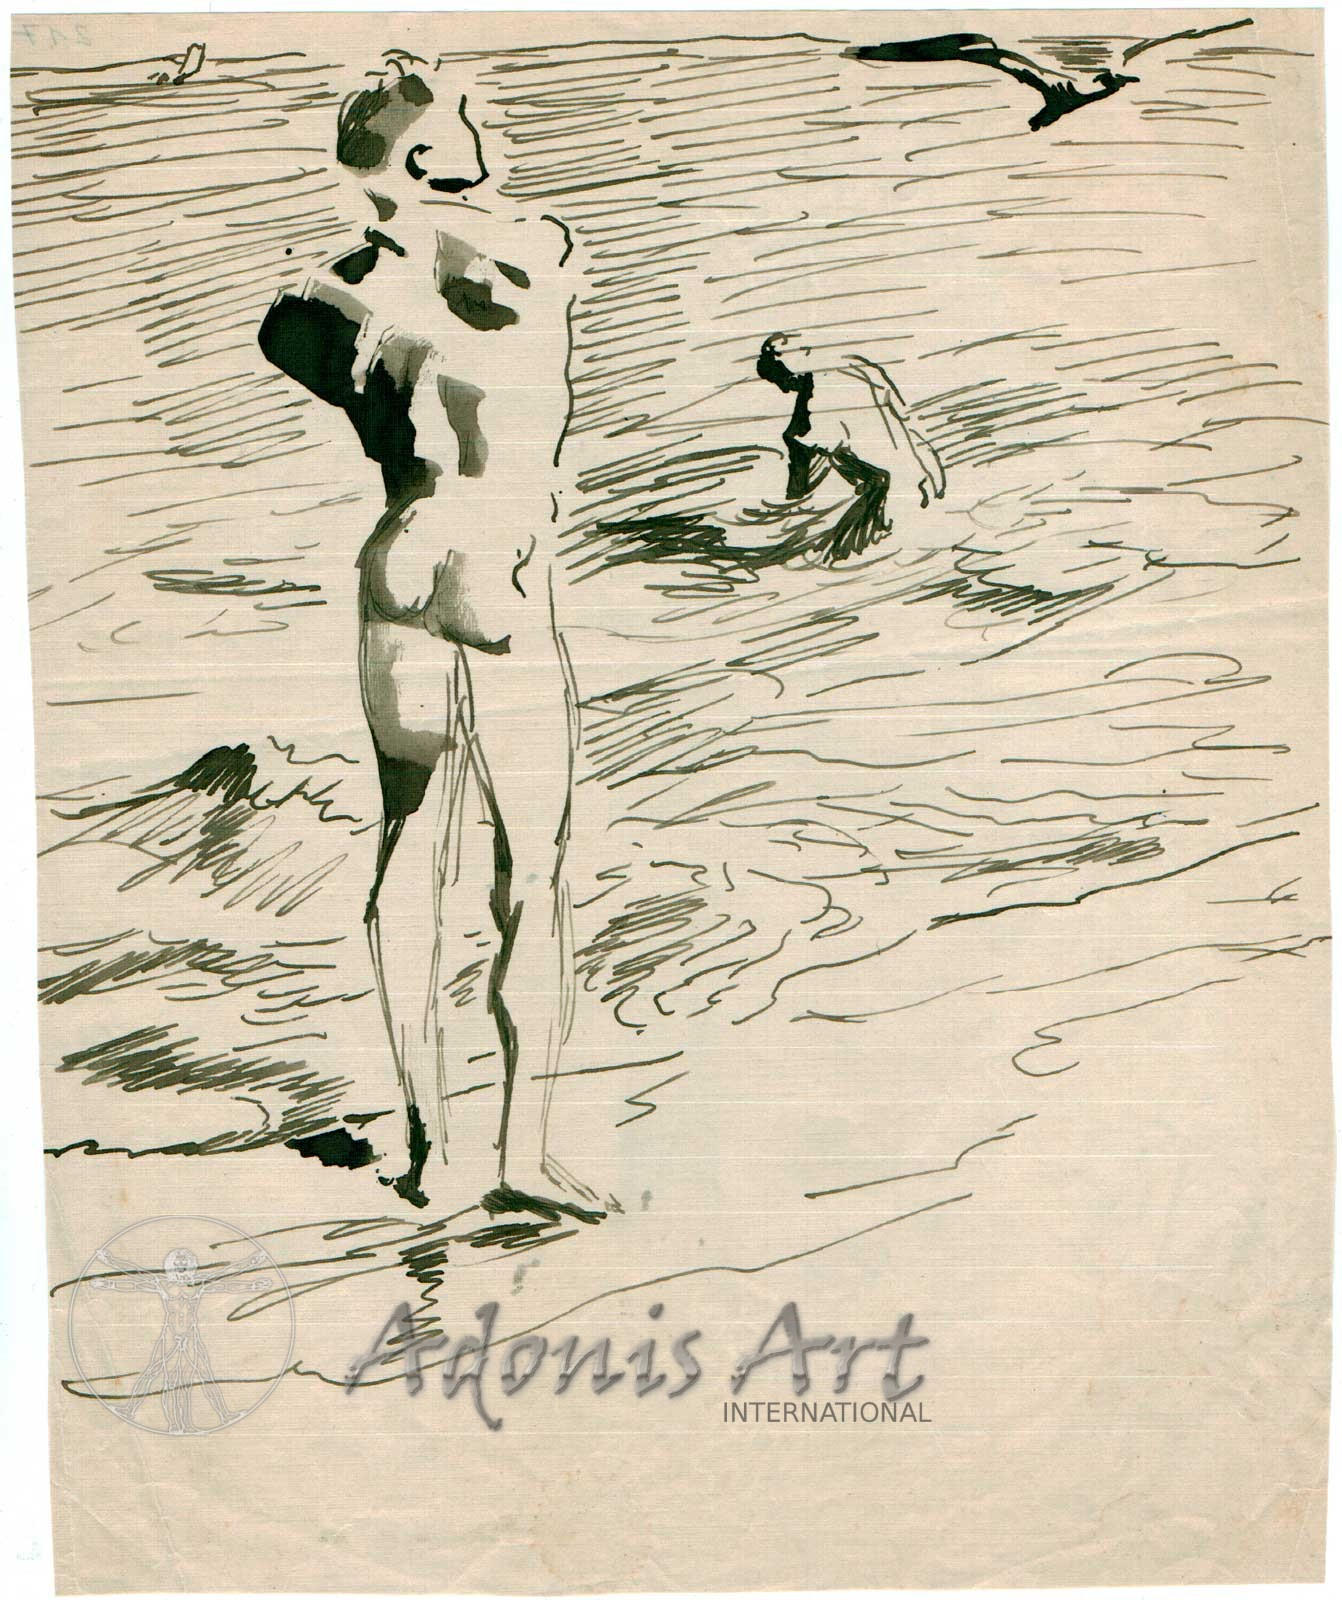 'Bathing at the Beach' by Wilhelm Heinrich Focke